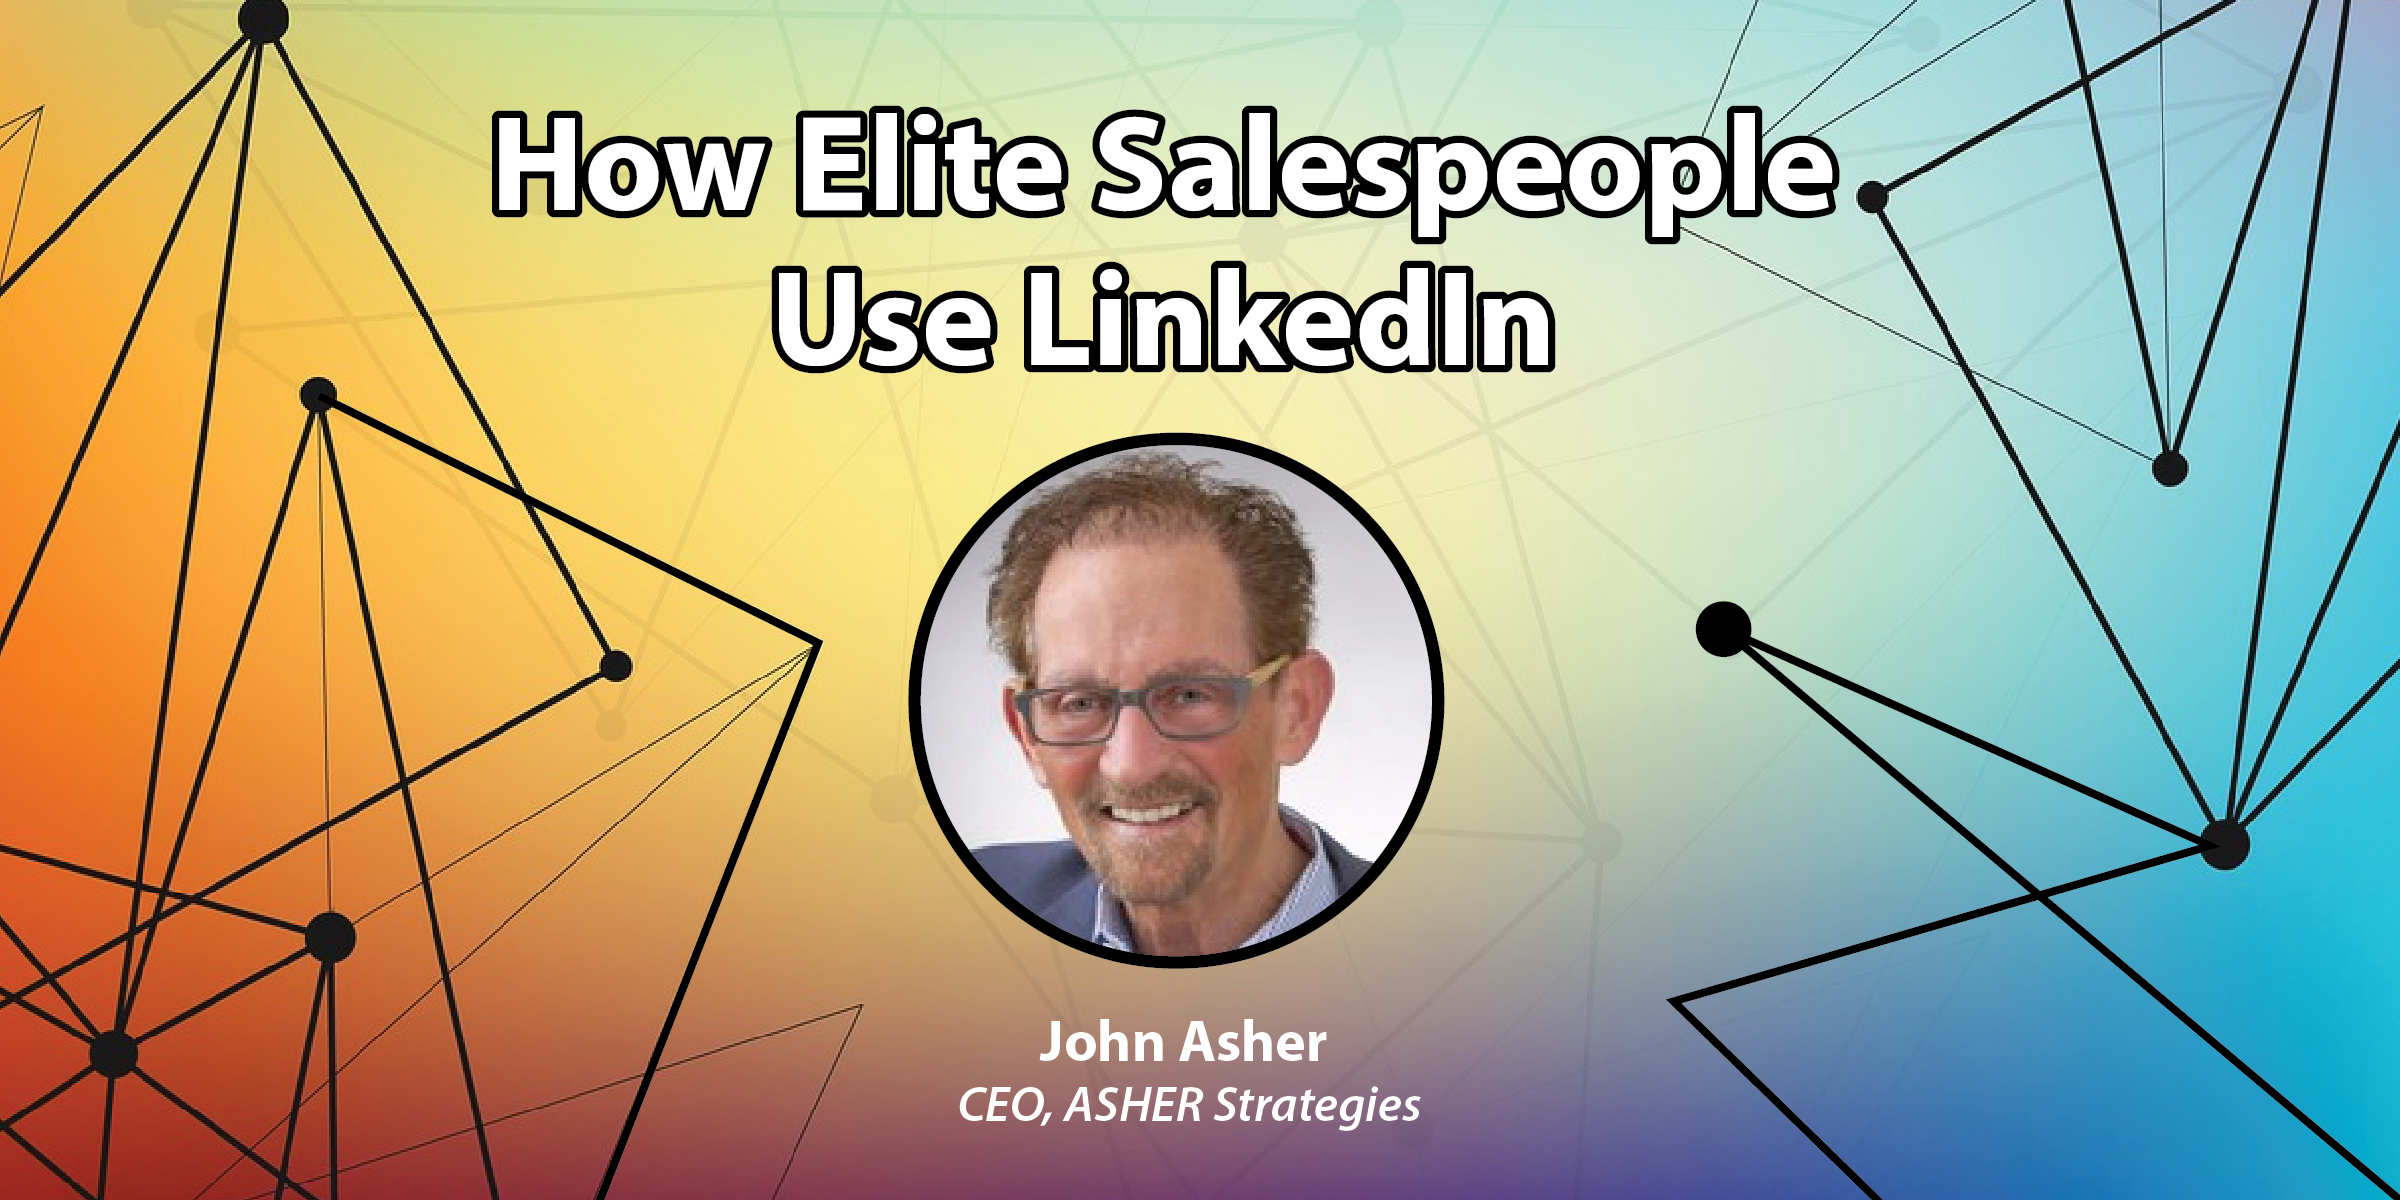 How Elite Salespeople Use LinkedIn: An Interview with John Asher, CEO at ASHER Strategies